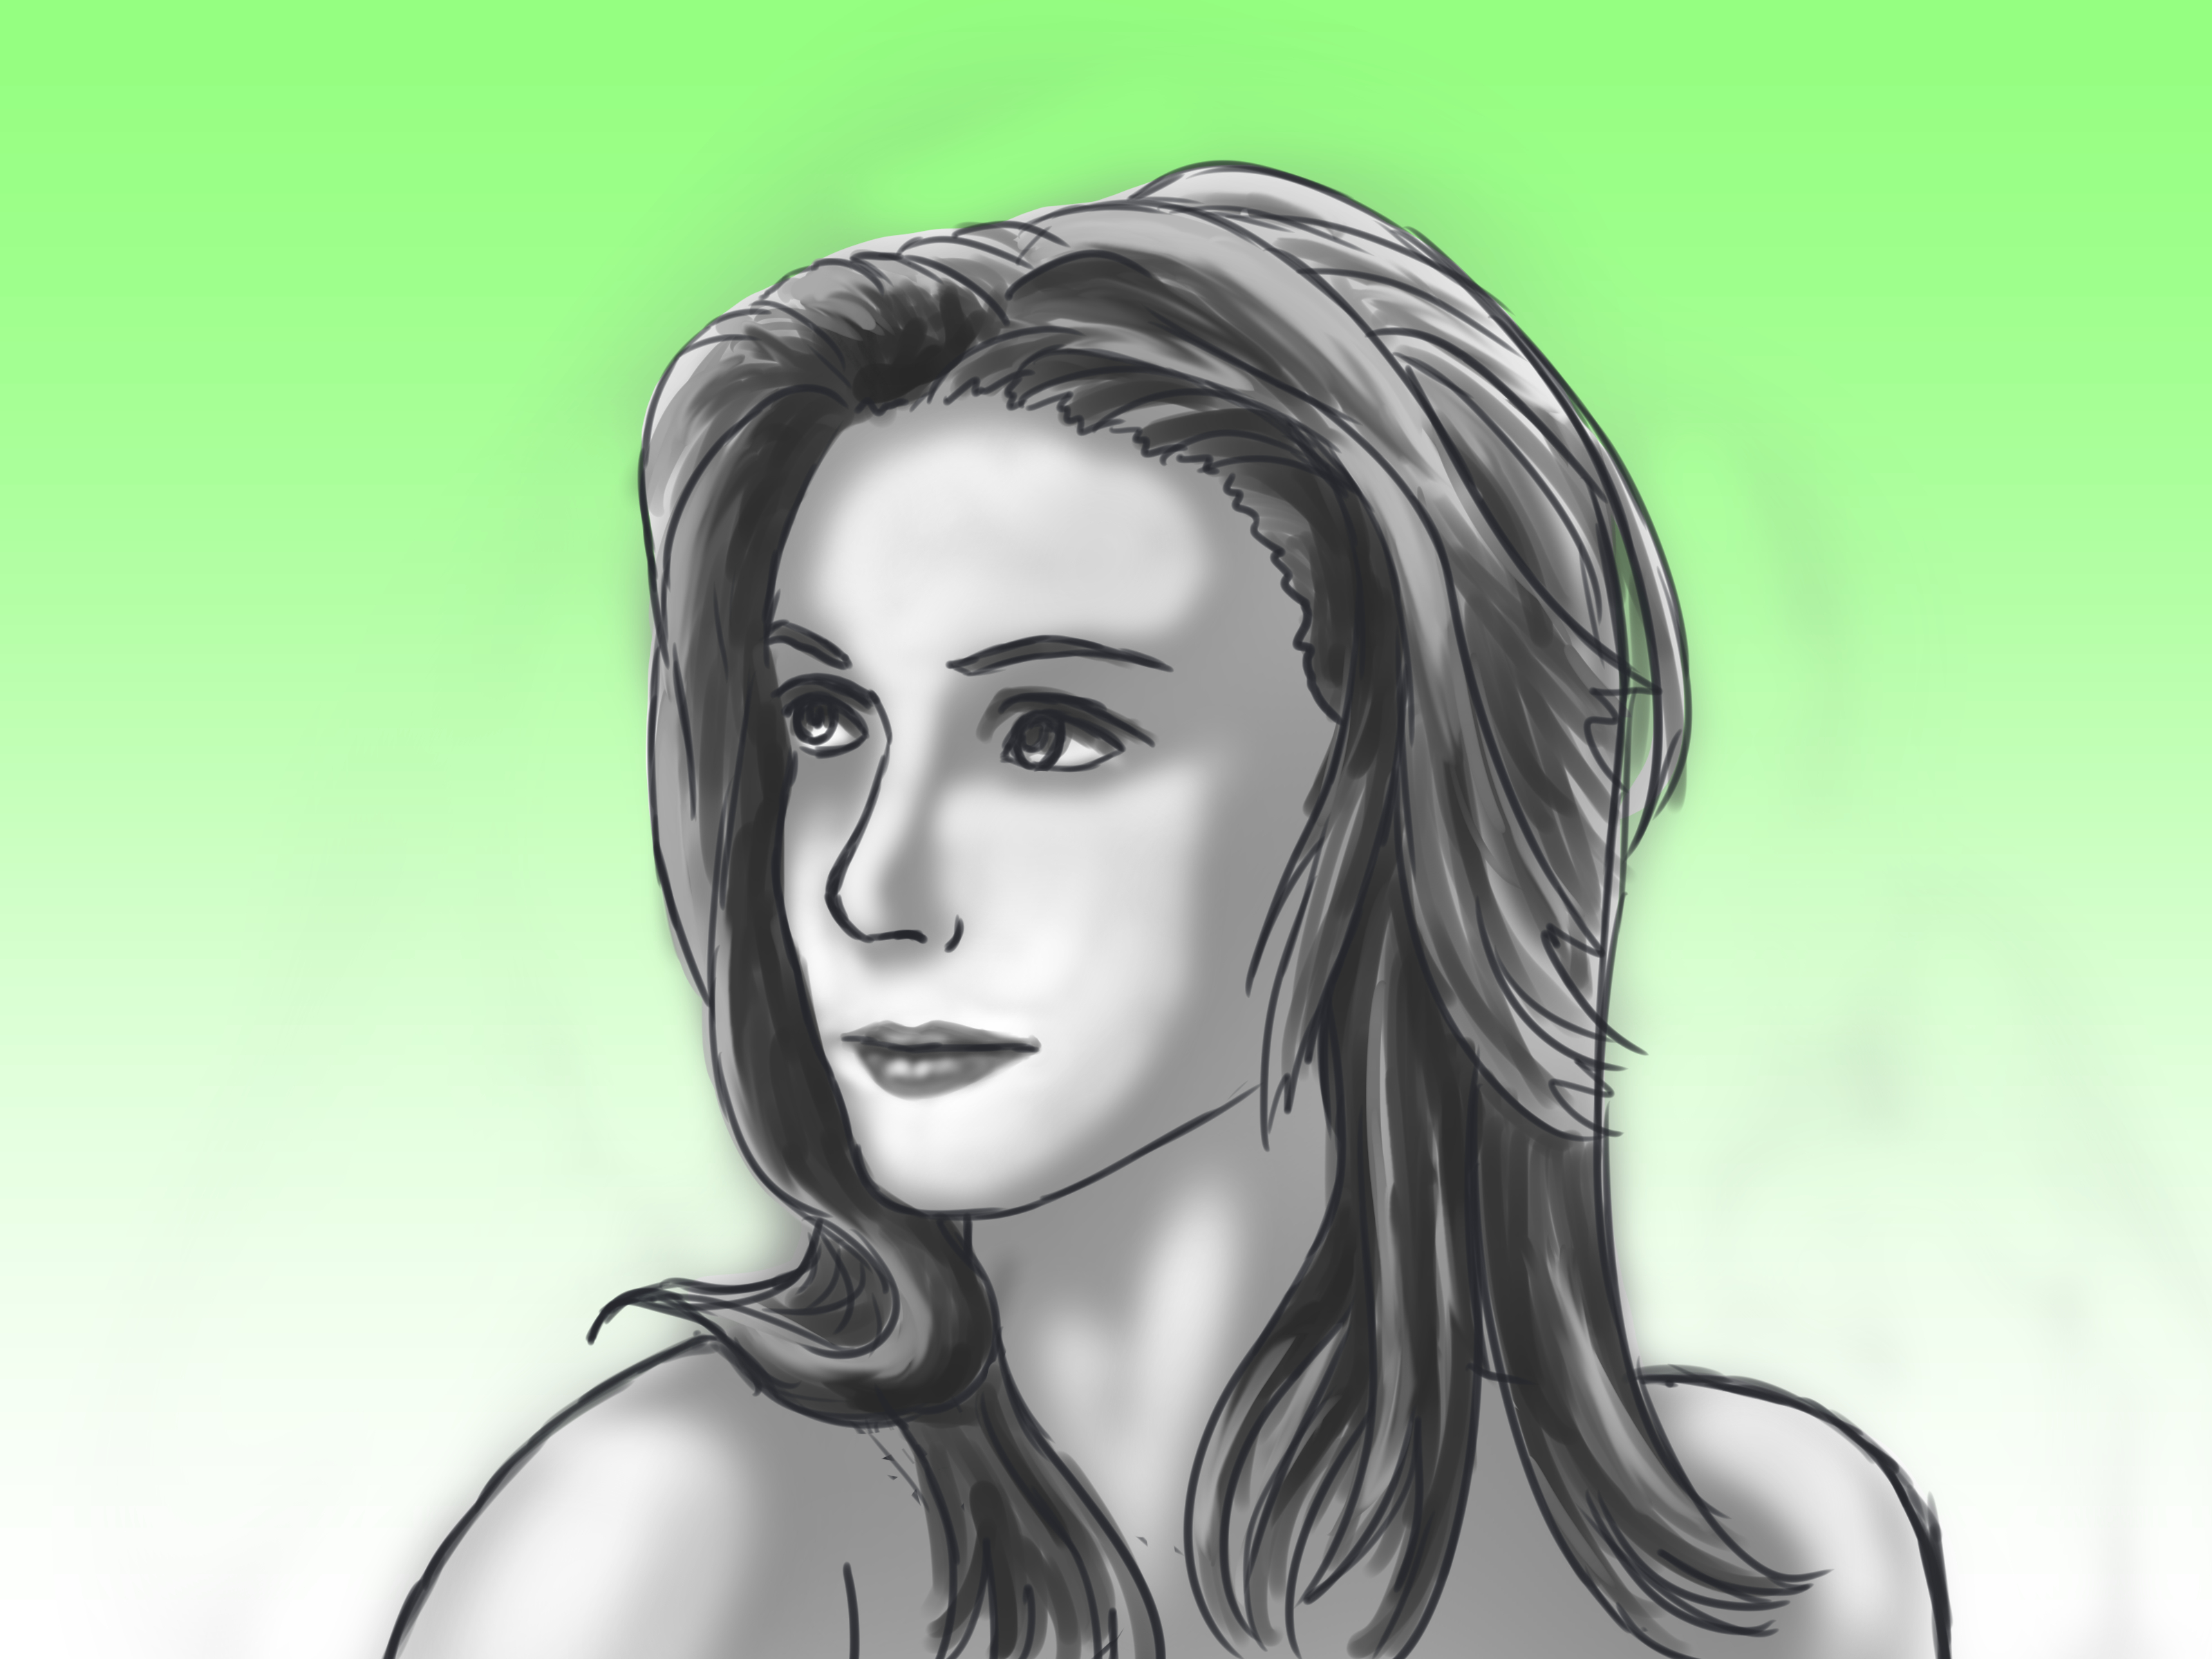 3200x2400 How To Draw A Portrait Of A Woman (With Pictures)